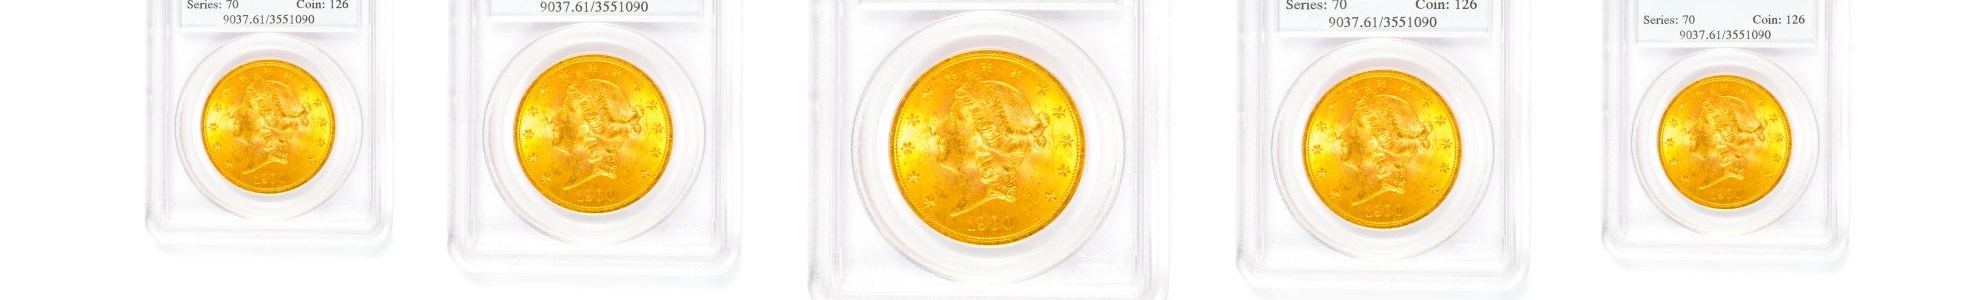 a collection of collectible gold coins